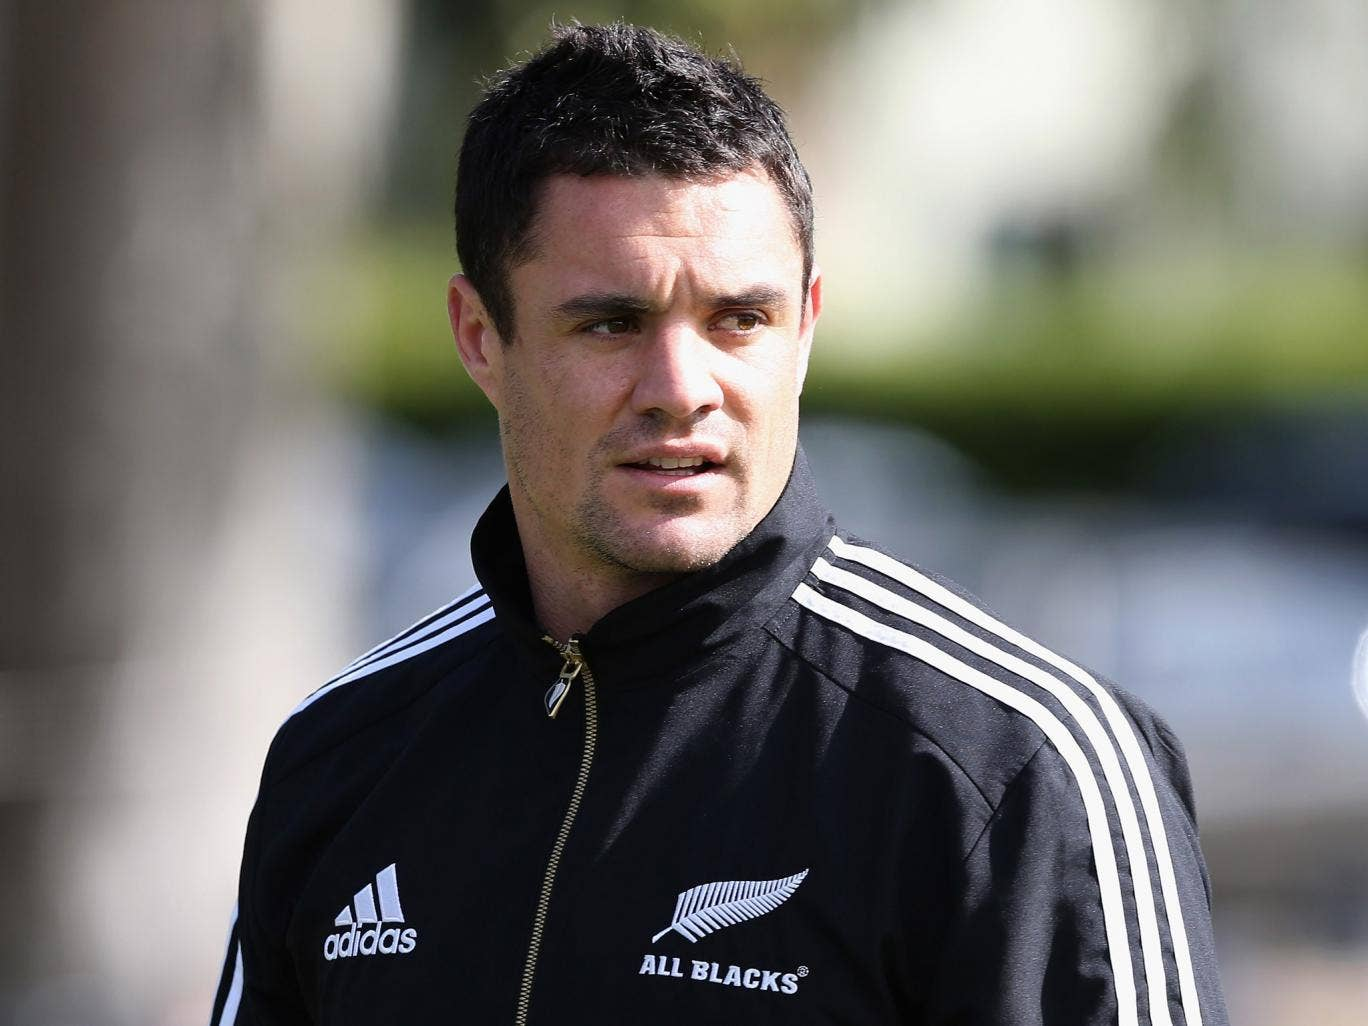 Dan Carter was named Player of the Year for a second time, at the IRB's annual awards